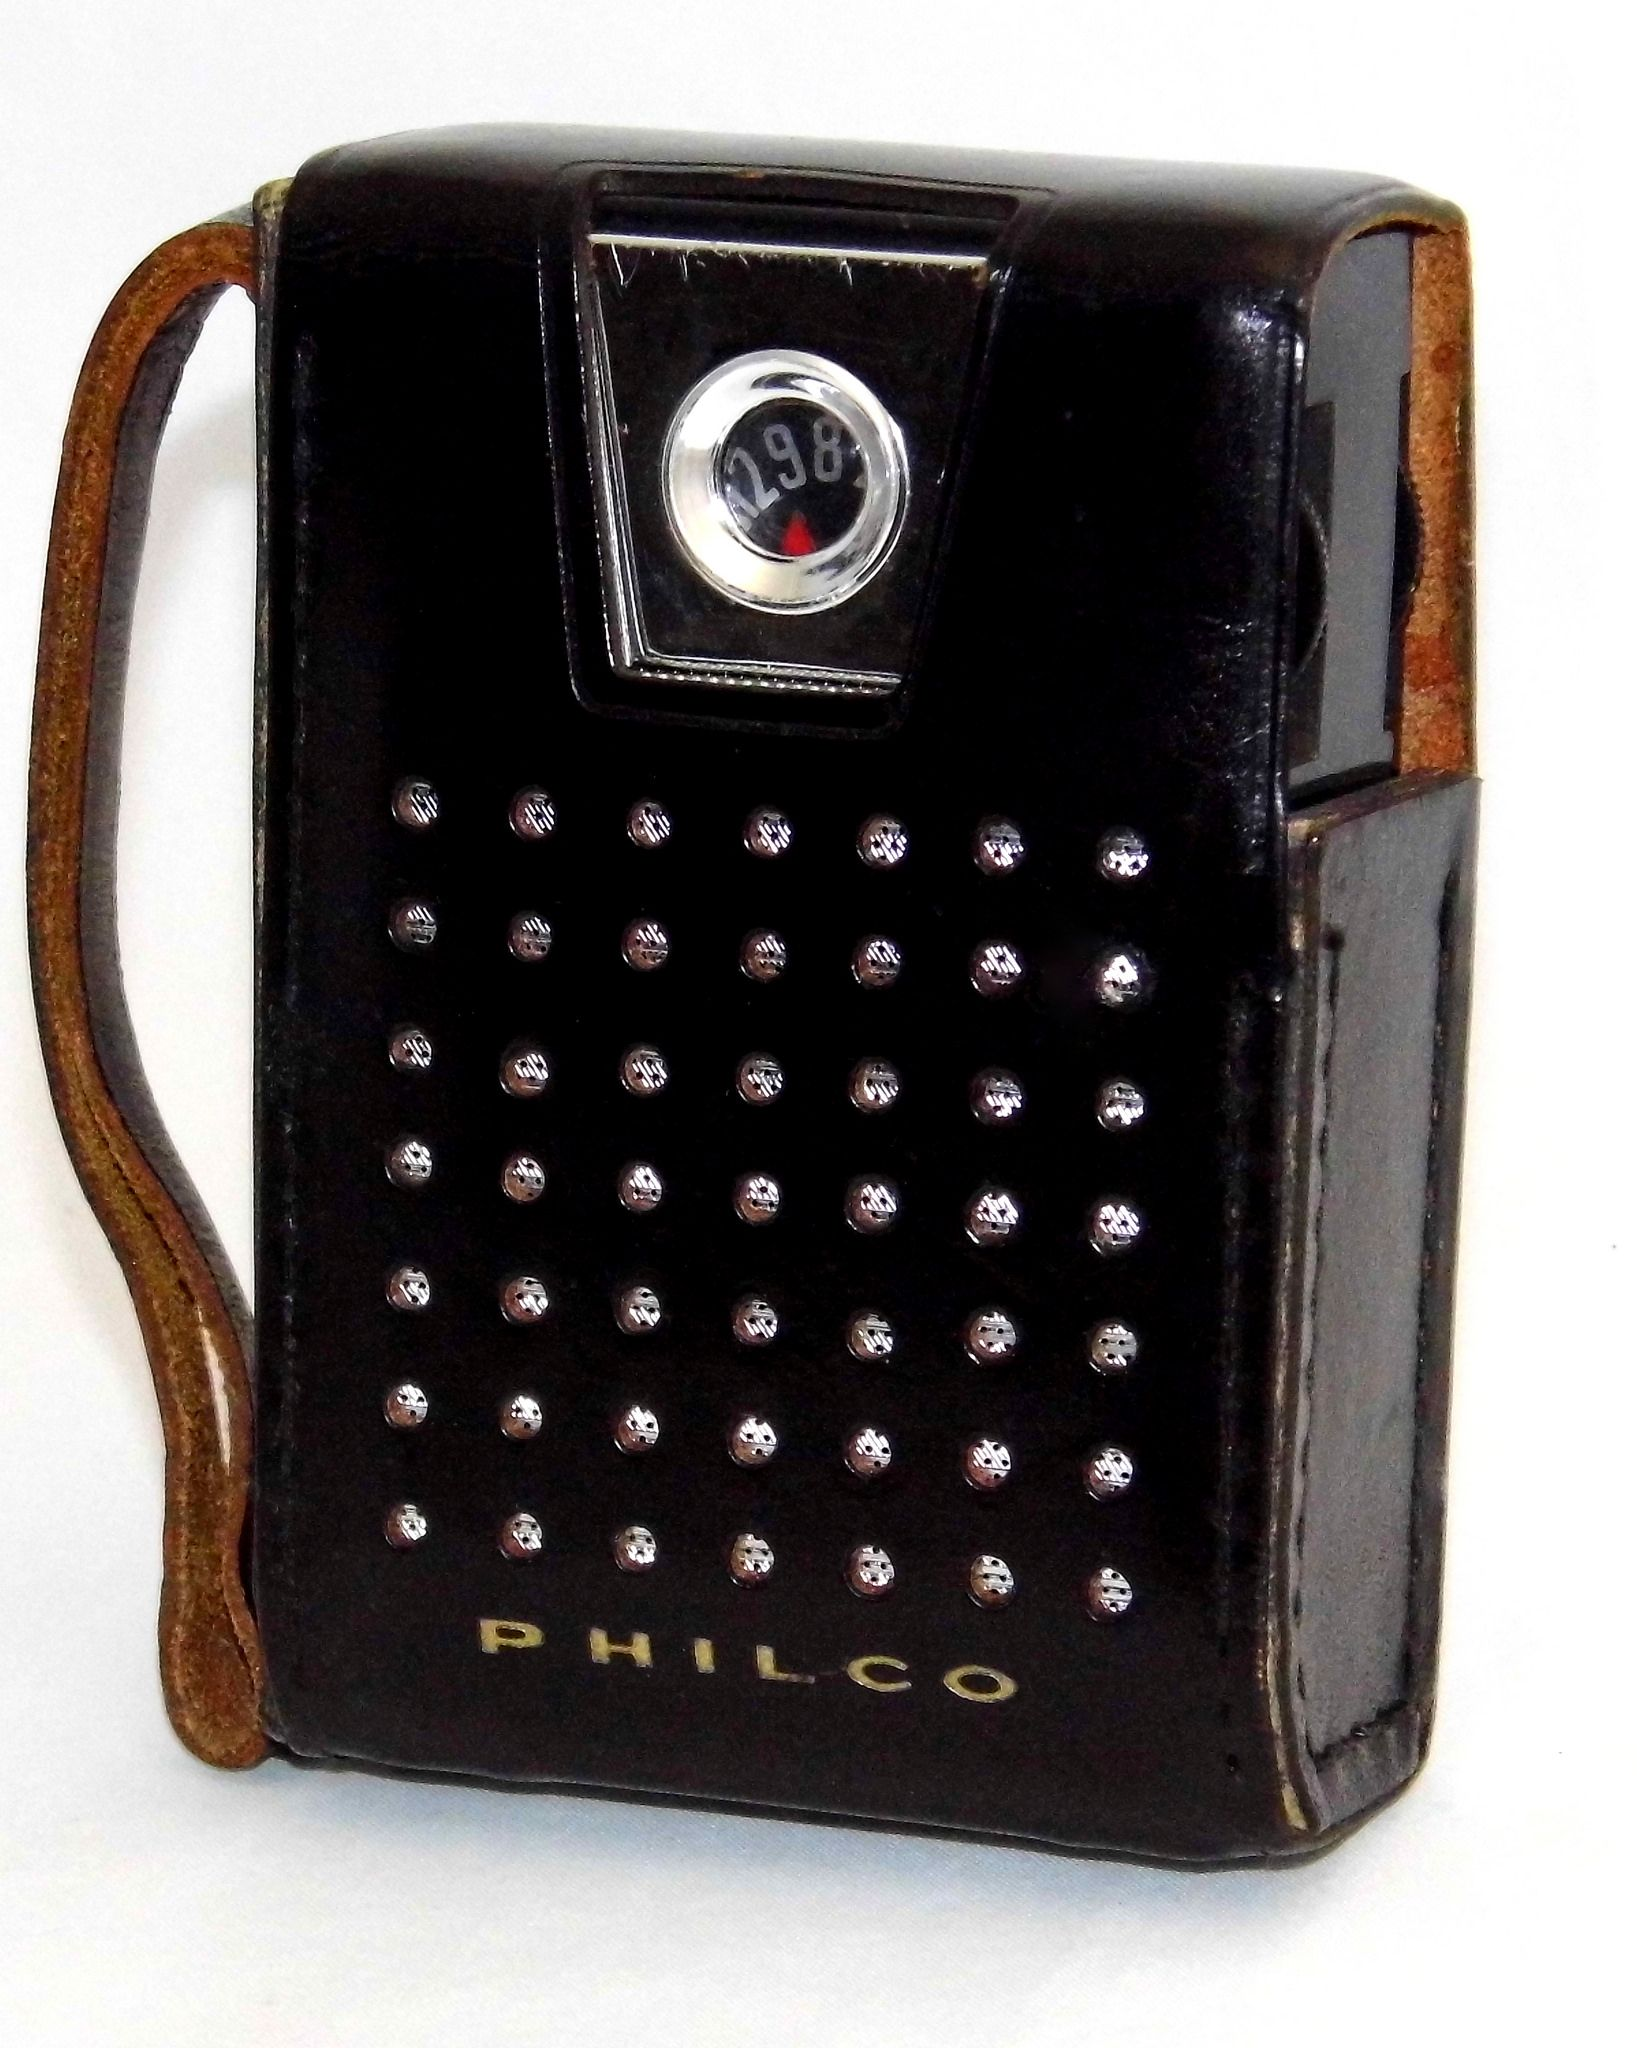 Vintage Philco Transistor Radio In Leather Case, Model NT-602BK, AM